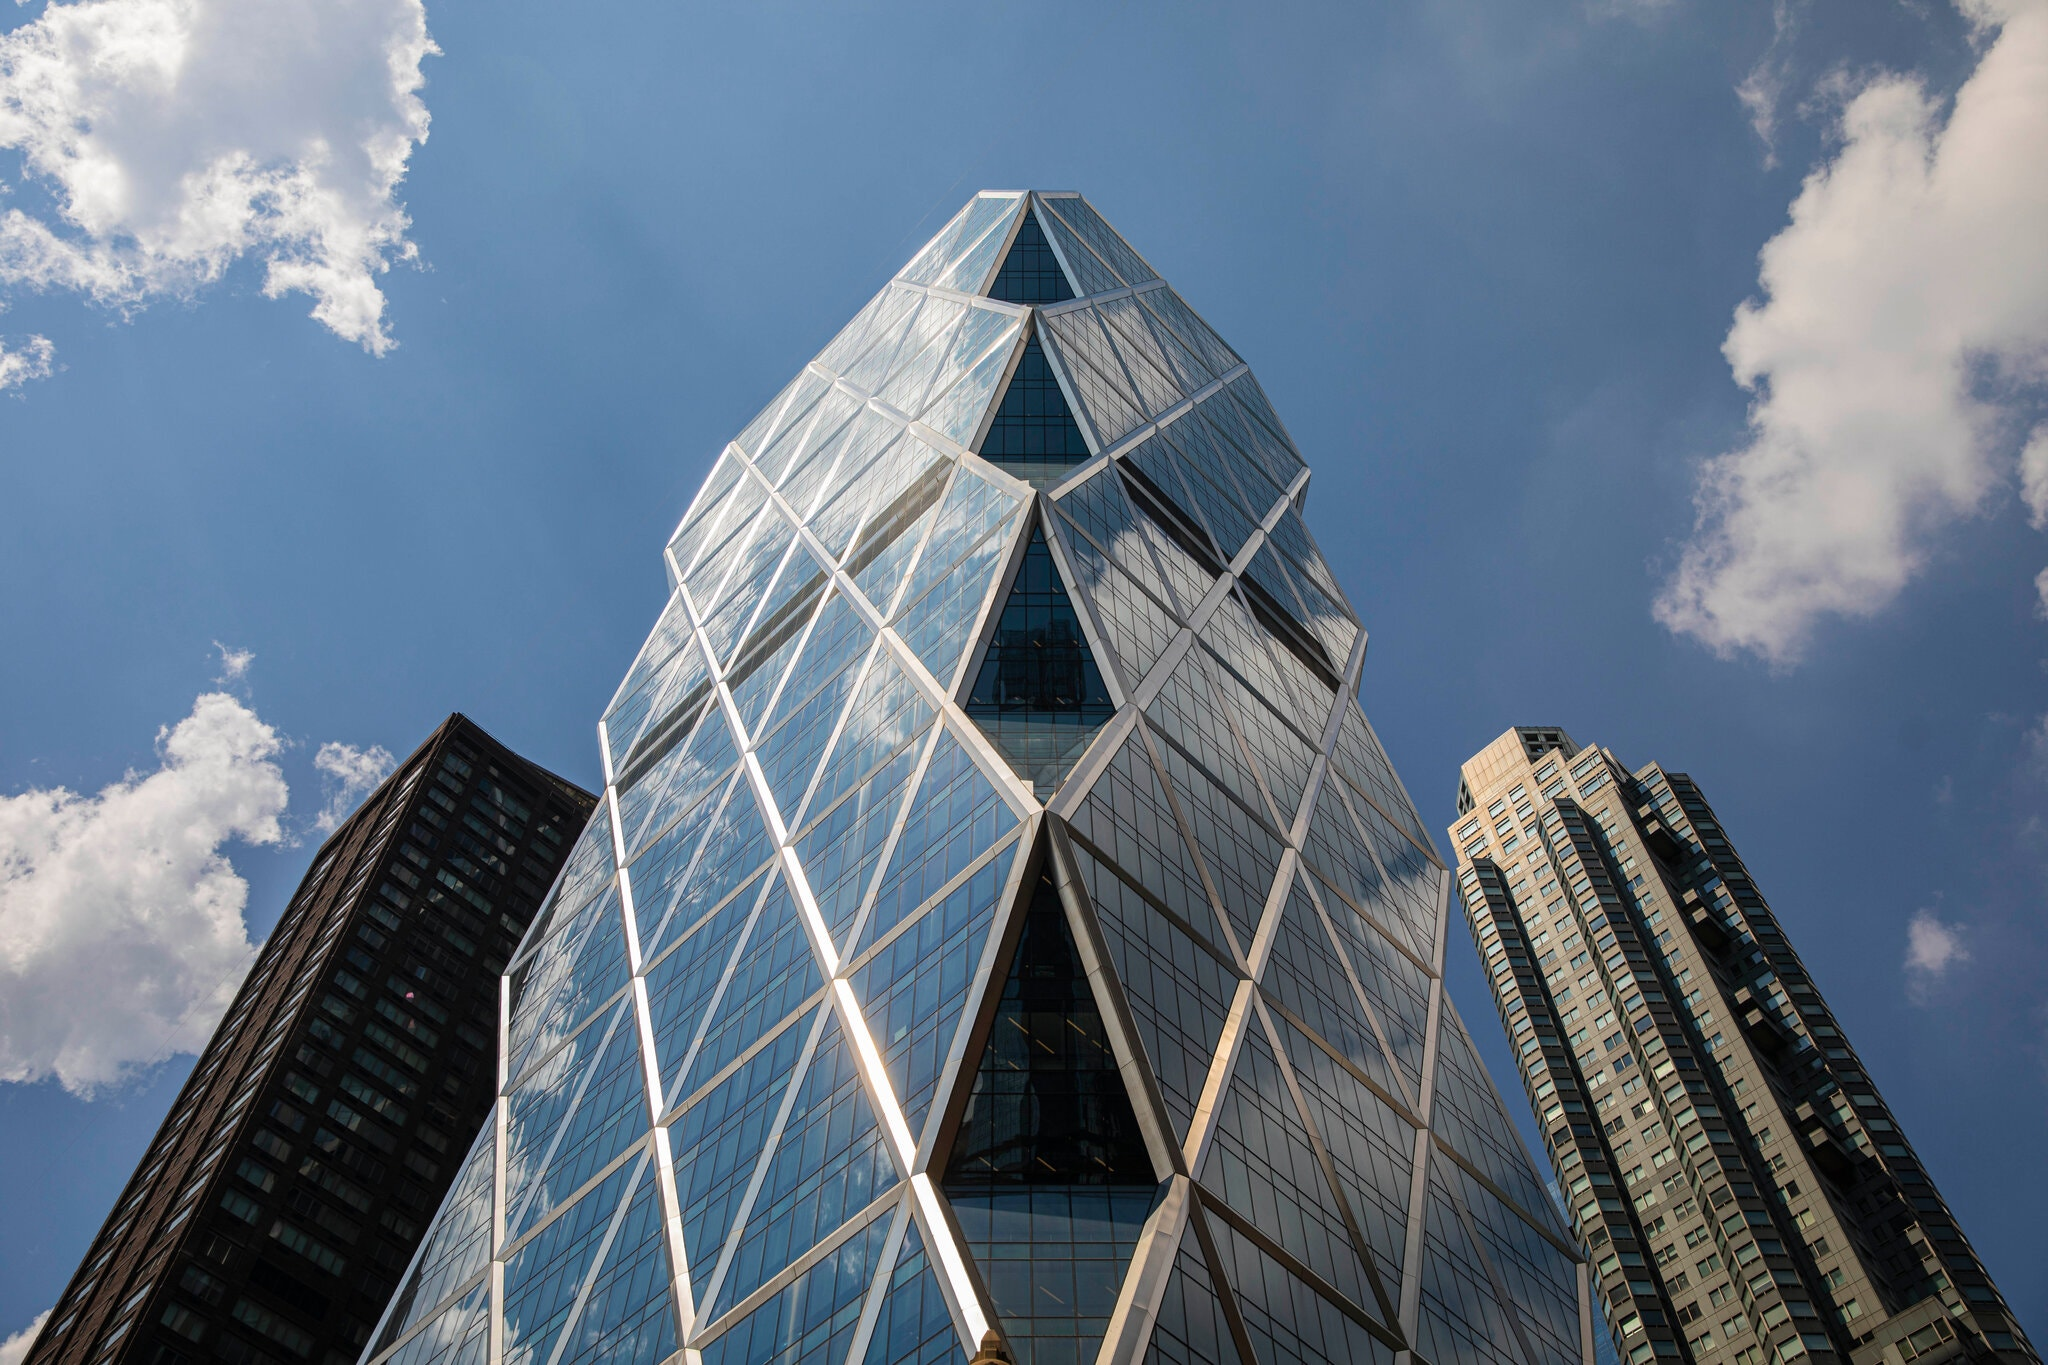 Did Hearst's Culture Kill Hearst's Biggest Magazine Story?